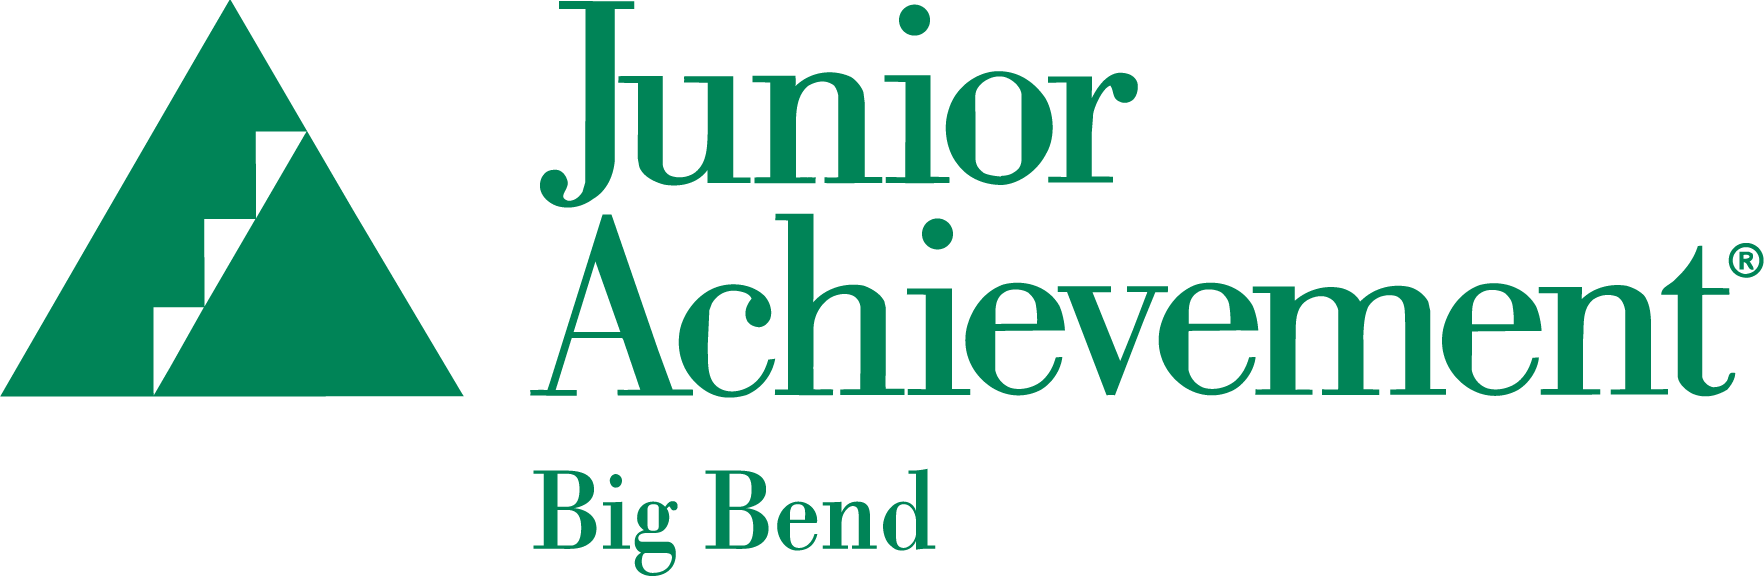 Junior Achievement Big Bend